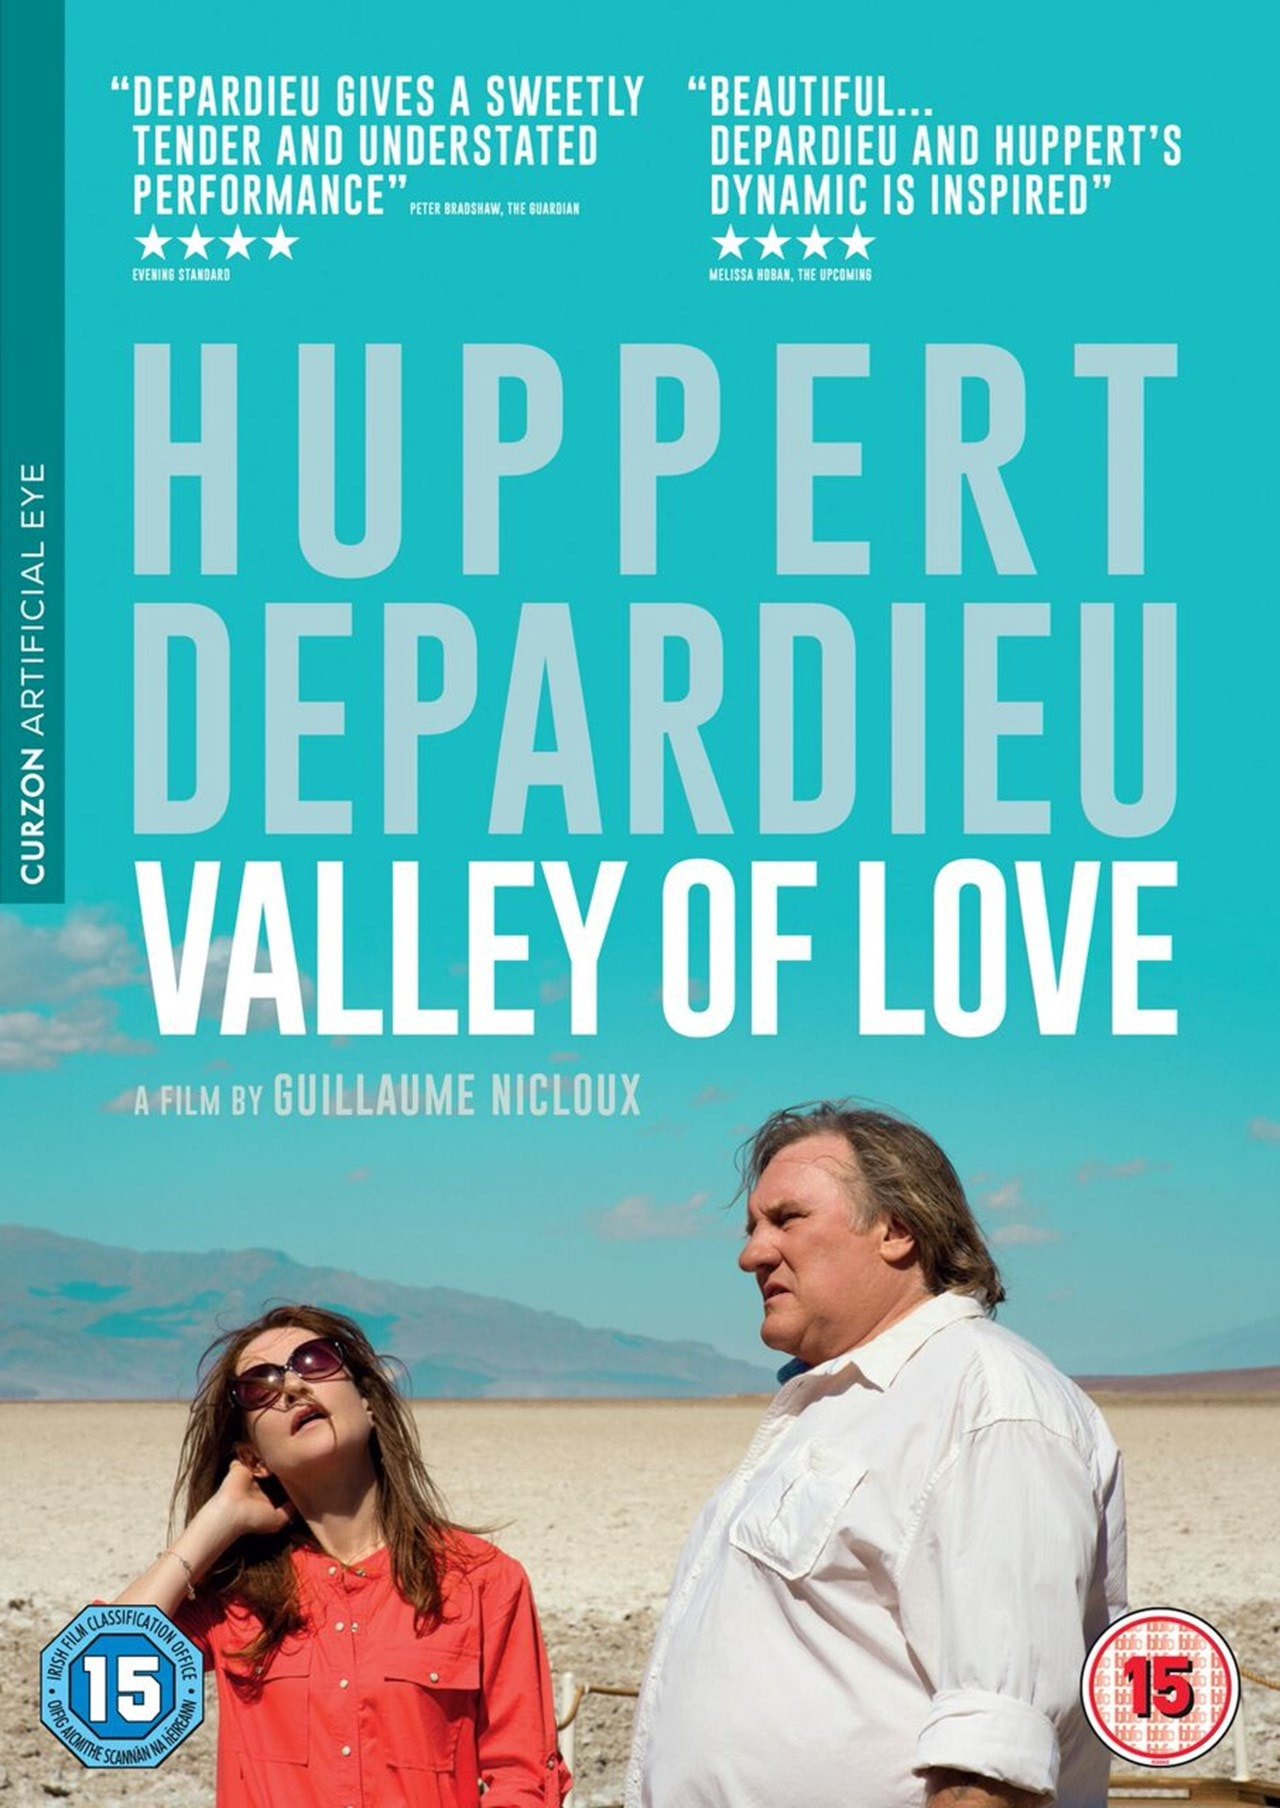 Valley of Love - 2